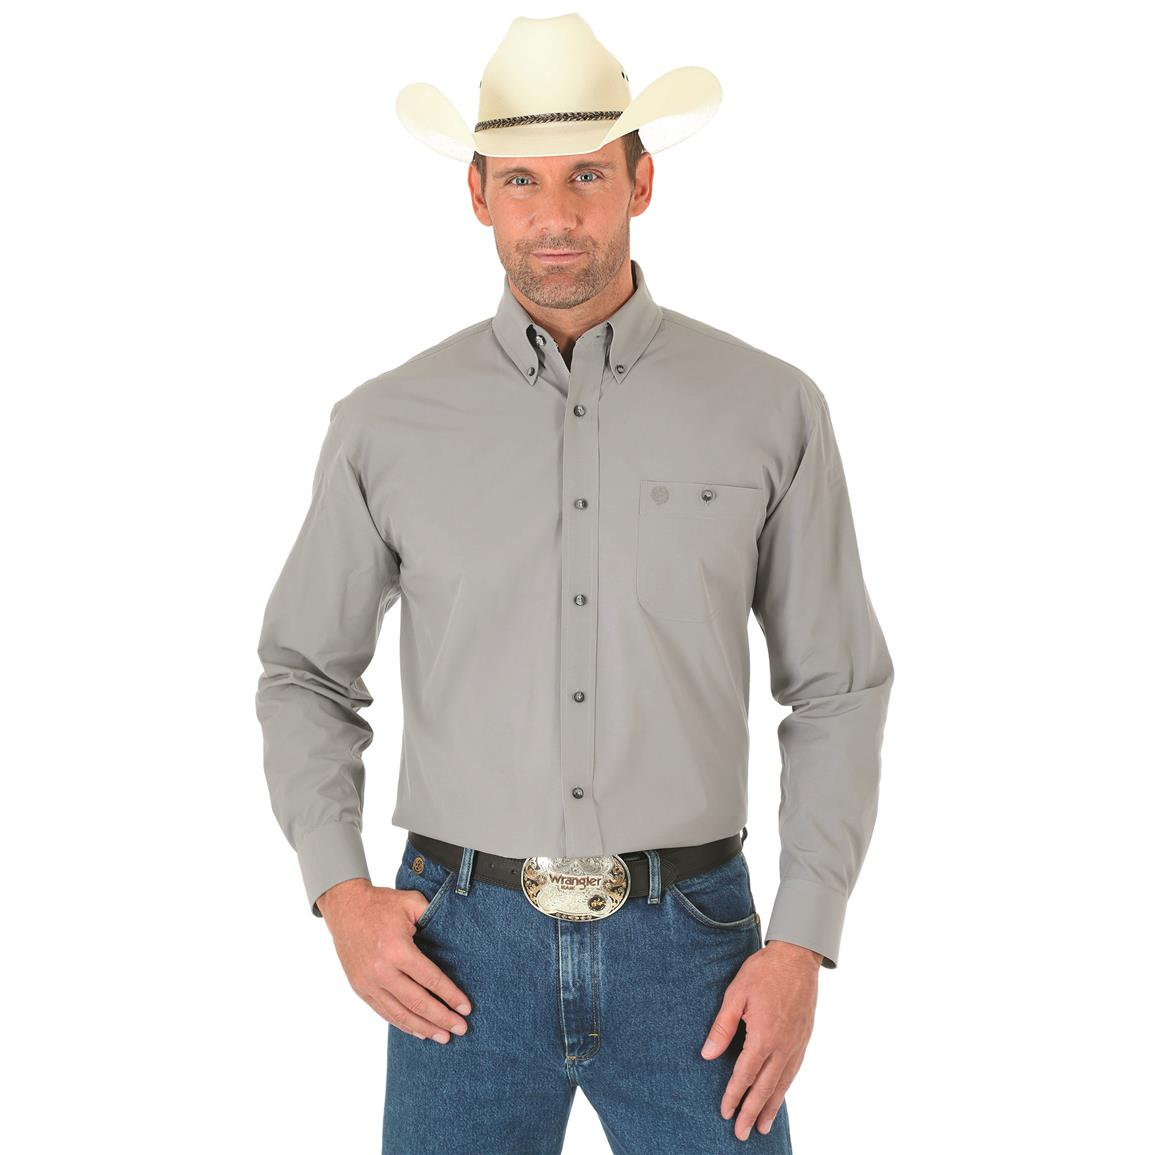 Wrangler George Strait Men's Long Sleeve Button Down Solid Shirt, Gray